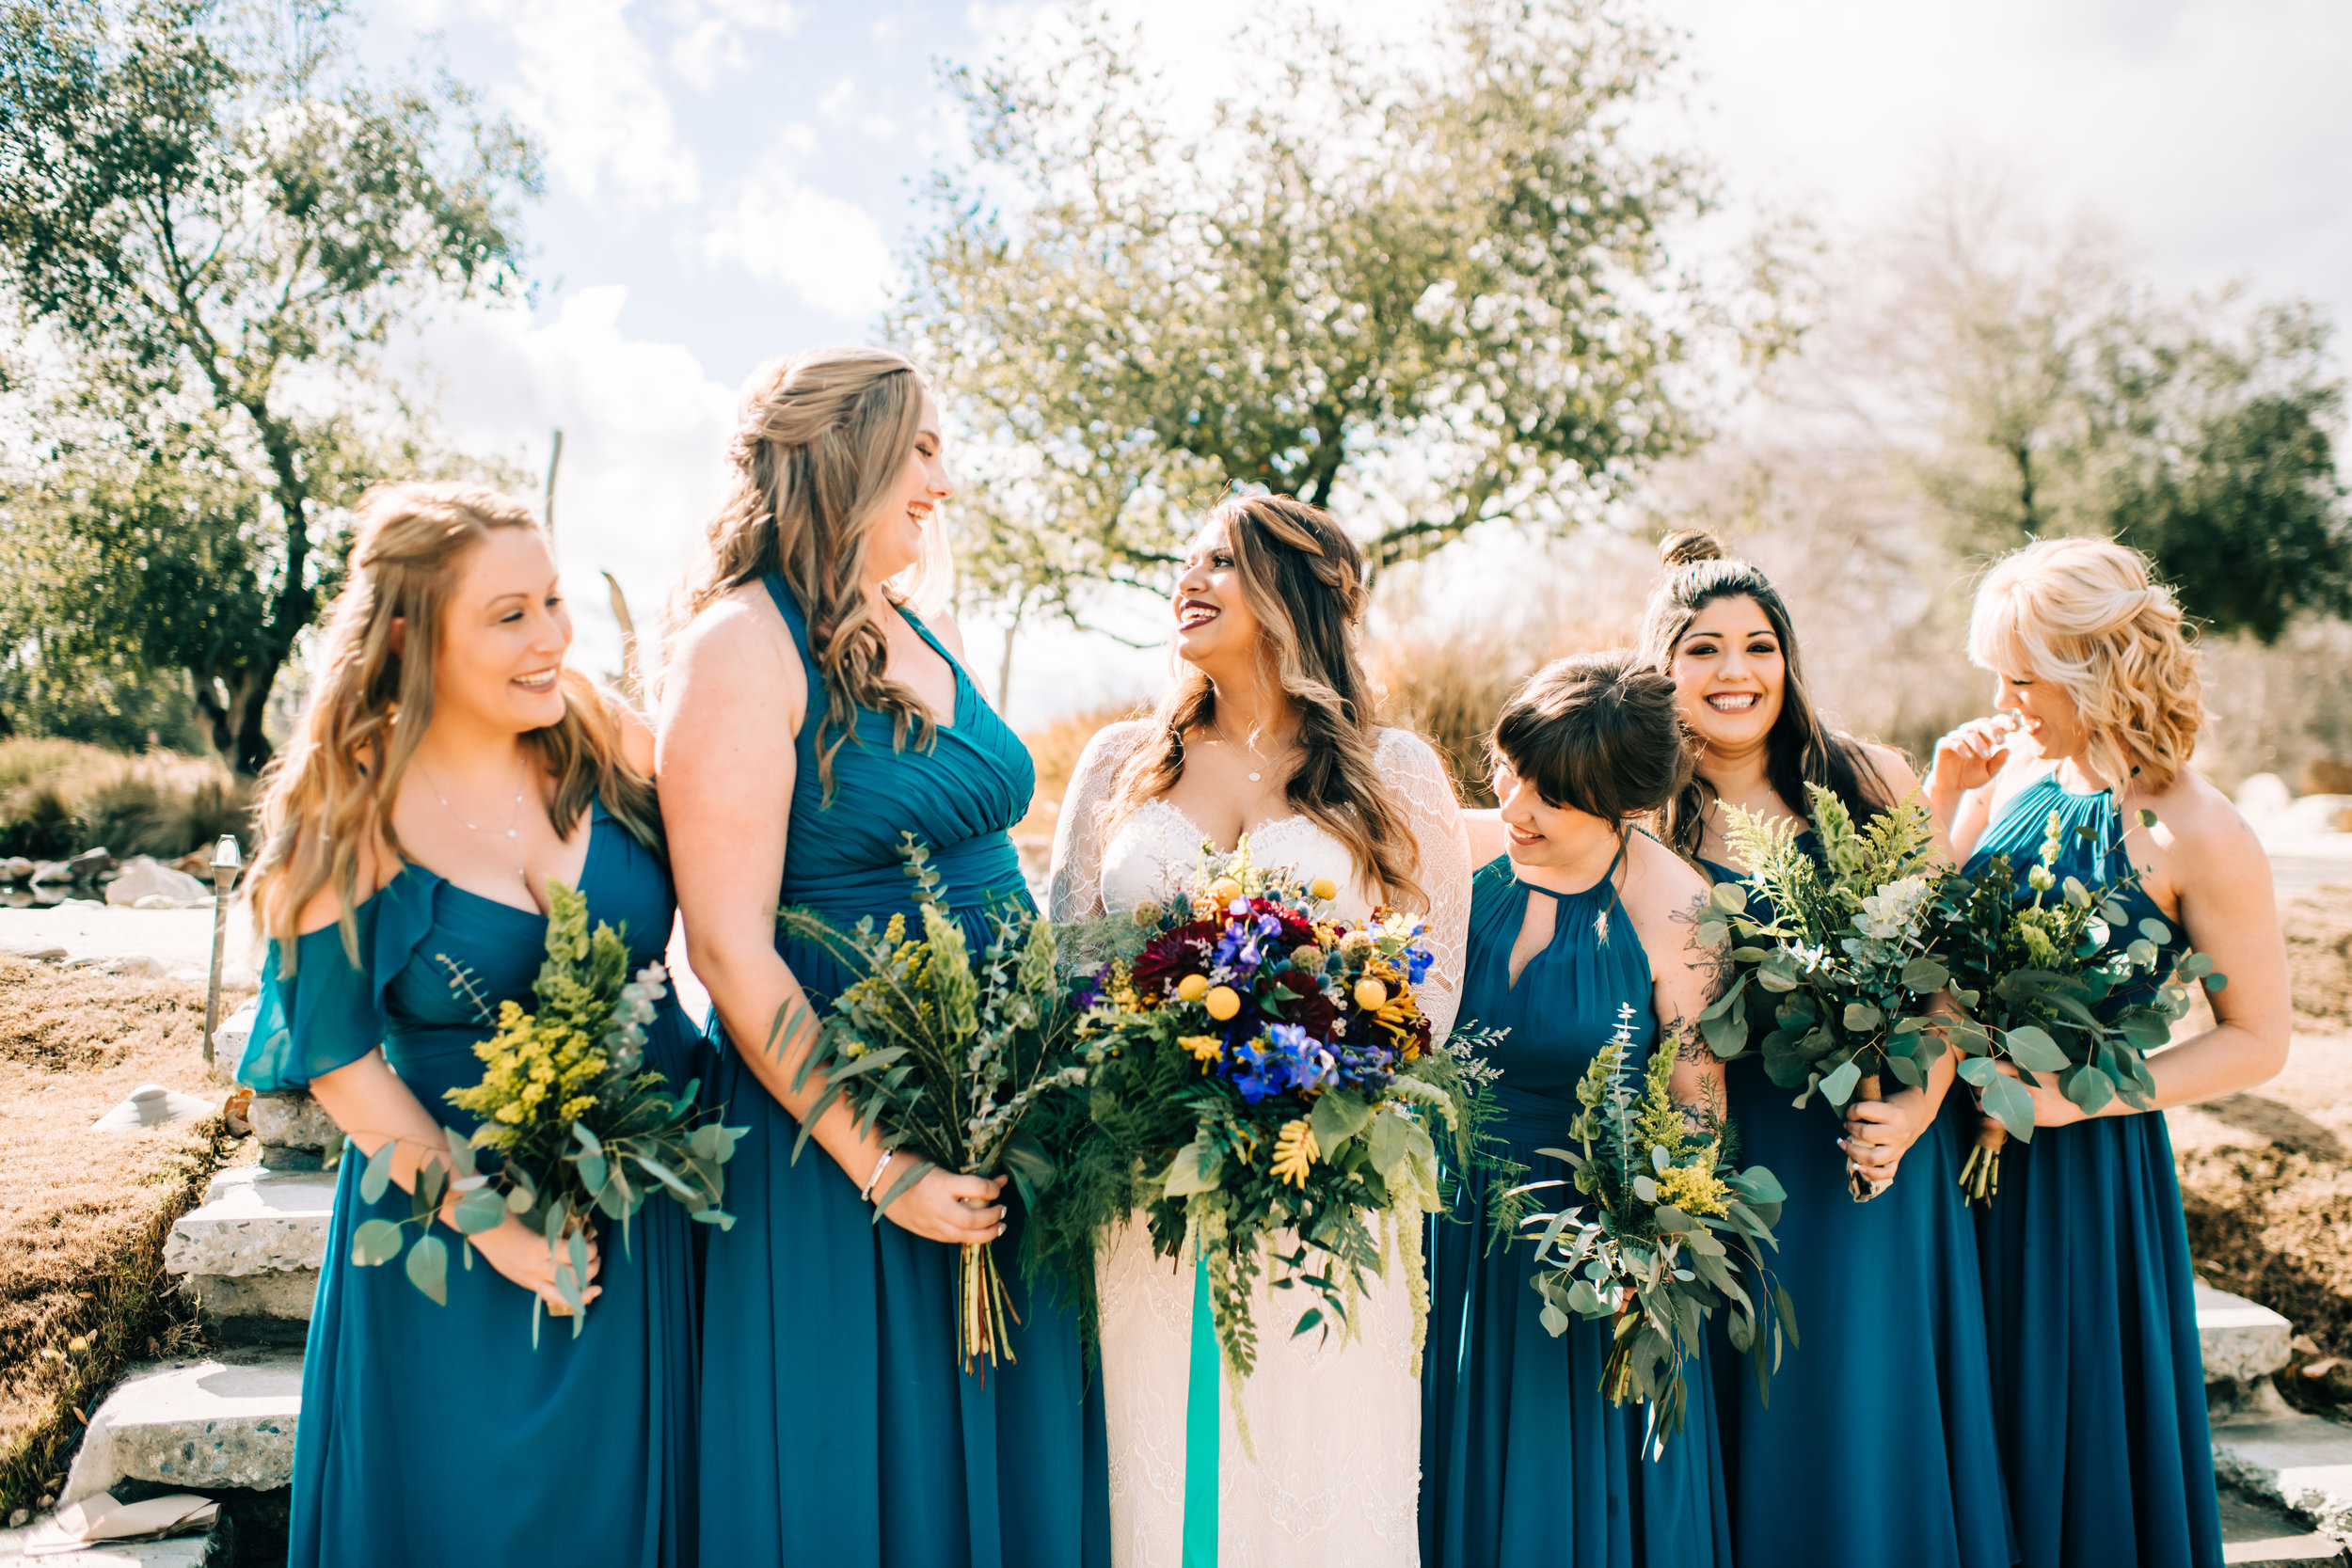 bay area nontraditional wedding photographer southern california boho wedding love light magic san francisco oakland northern california-133.jpg